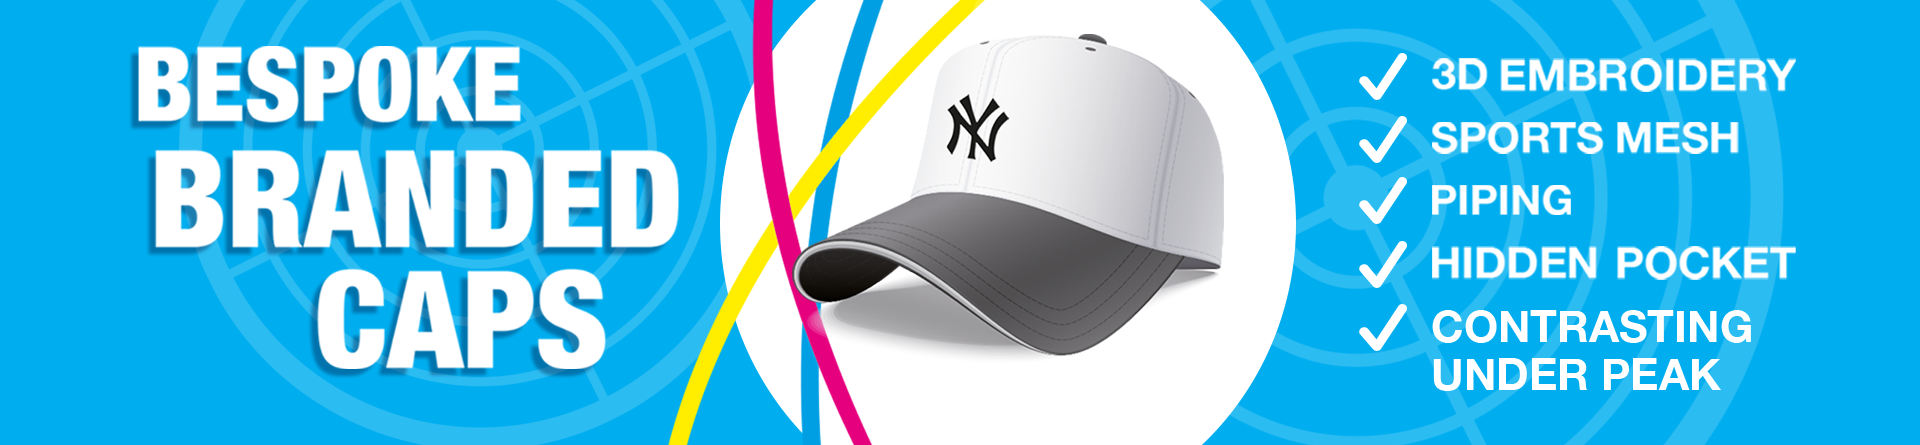 Hype-Banner-bespoke-branded-caps(2).png